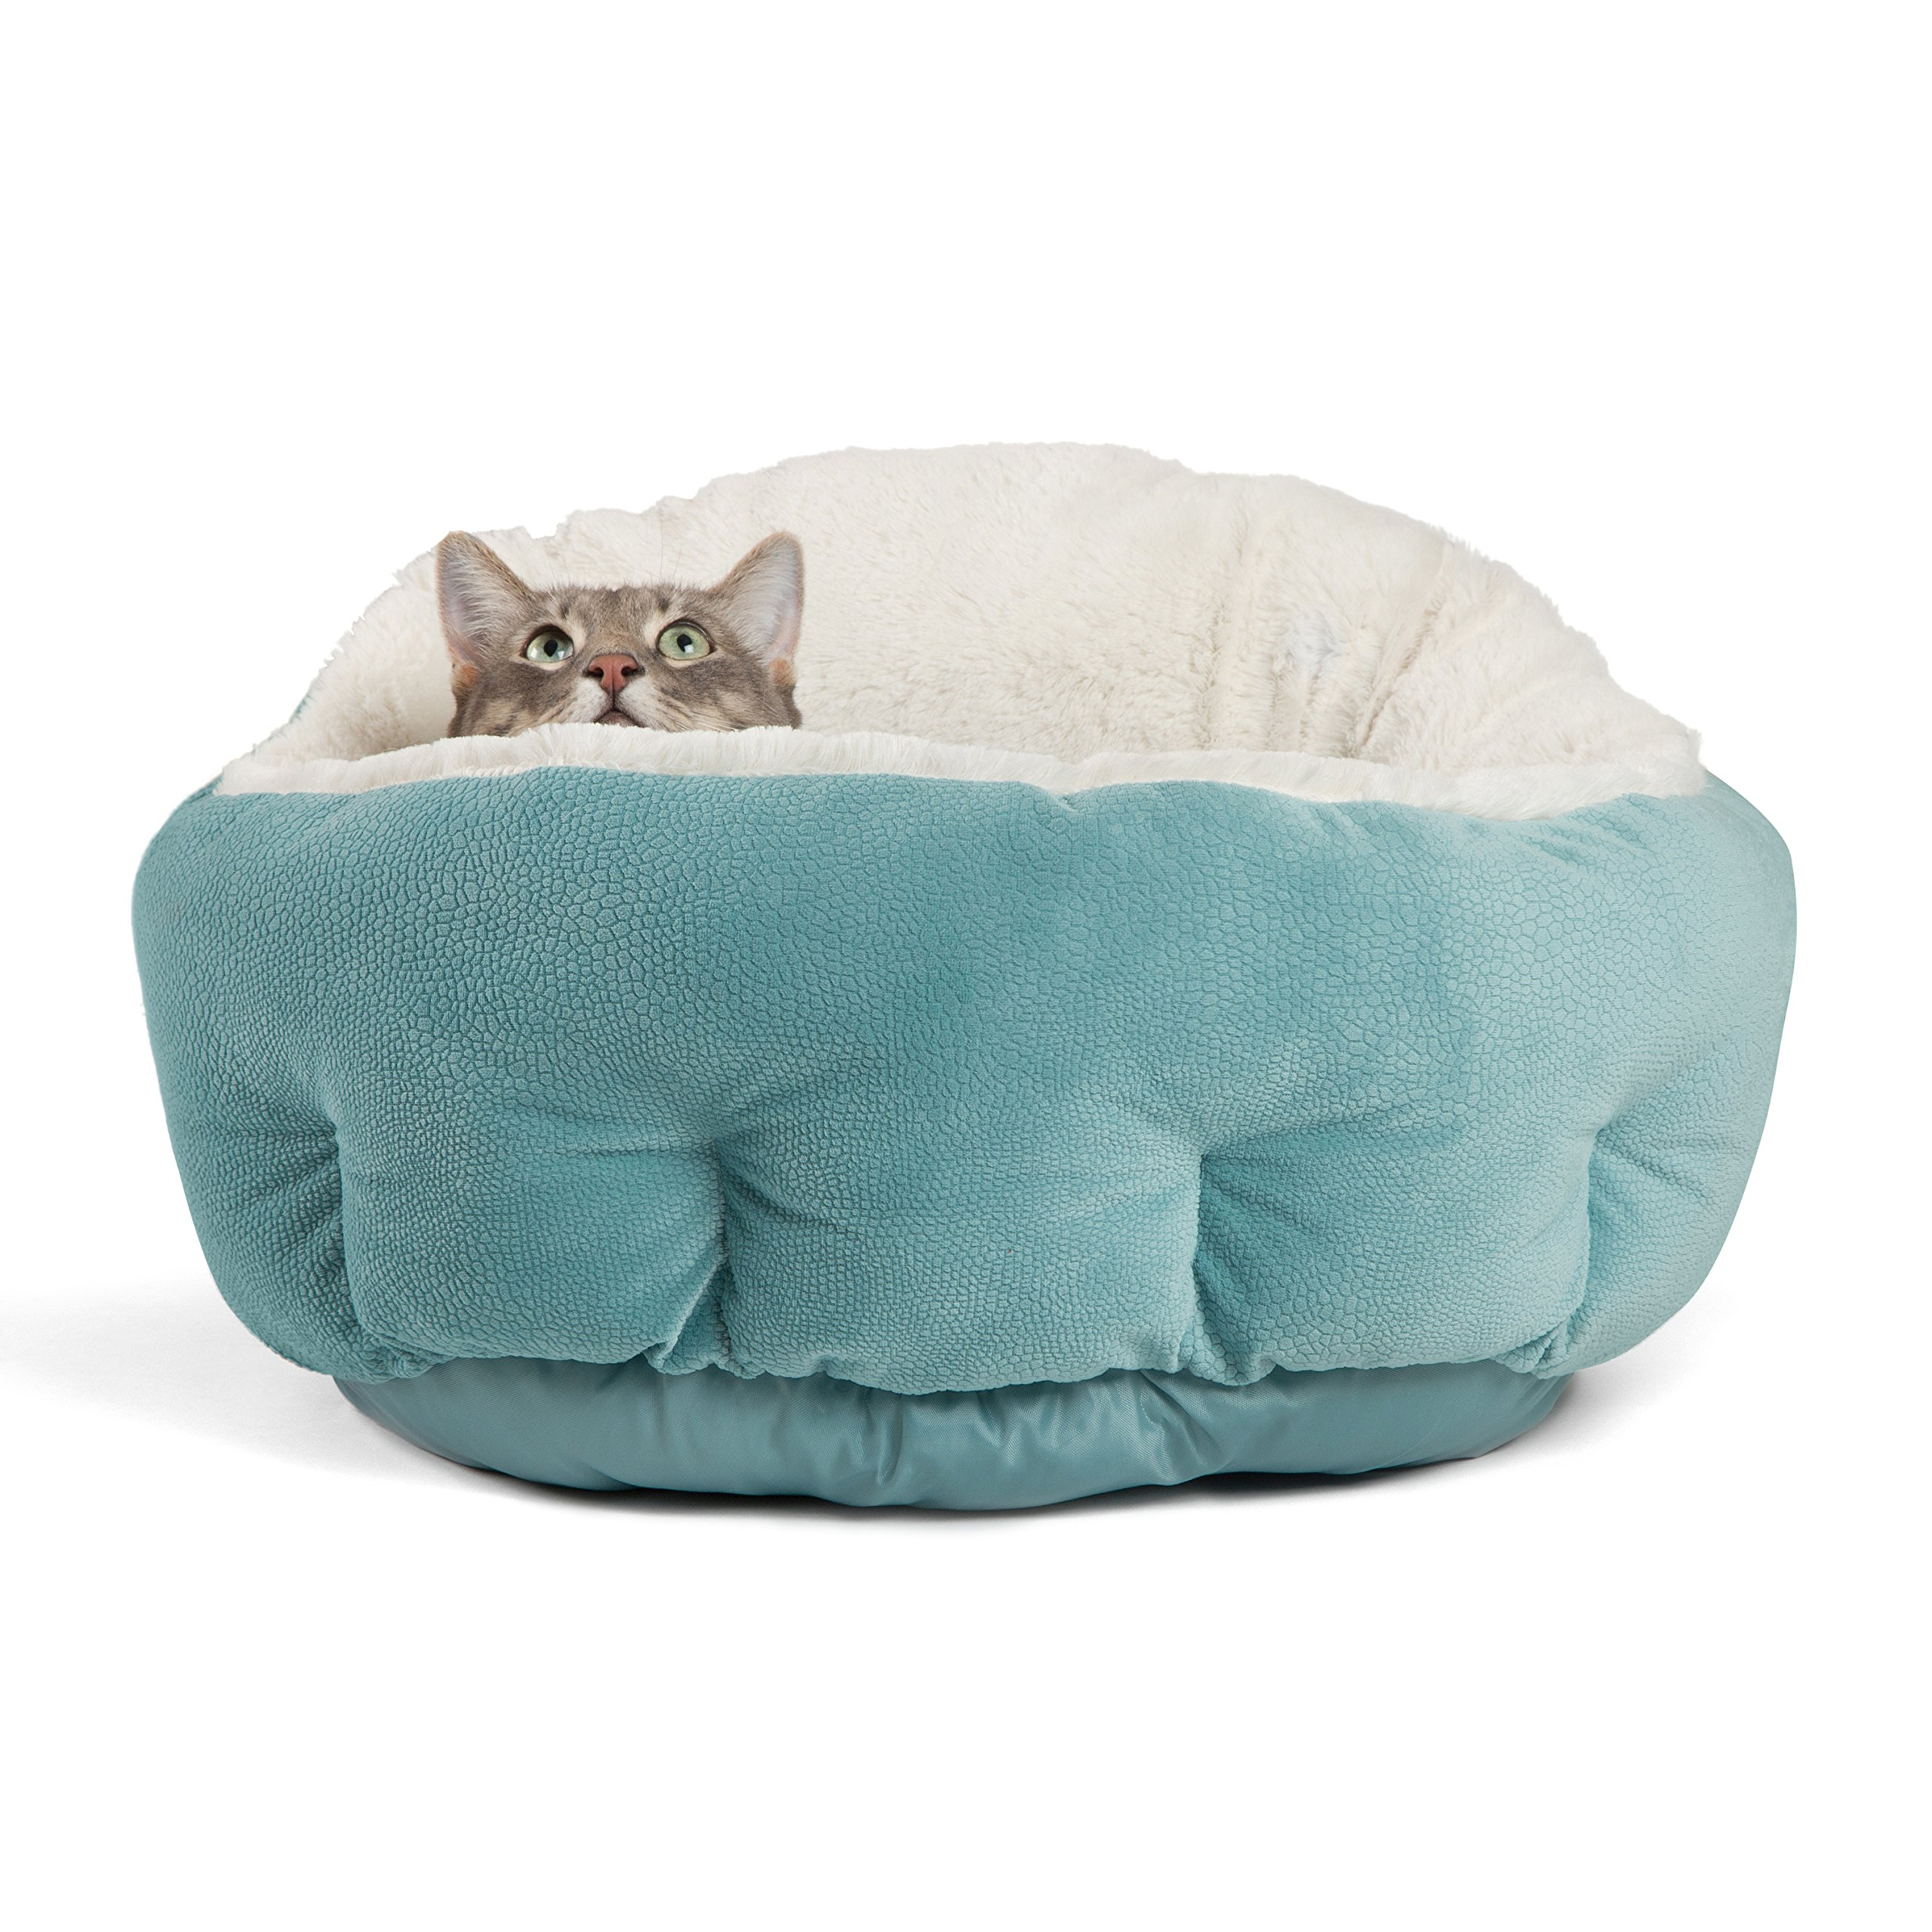 Best Friends by Sheri OrthoComfort Deep Dish Cuddler - Self-Warming Cat and Dog Bed Cushion for Joint-Relief and Improved Sleep - Machine Washable, Waterproof Bottom - For Pets Up to 25lbs